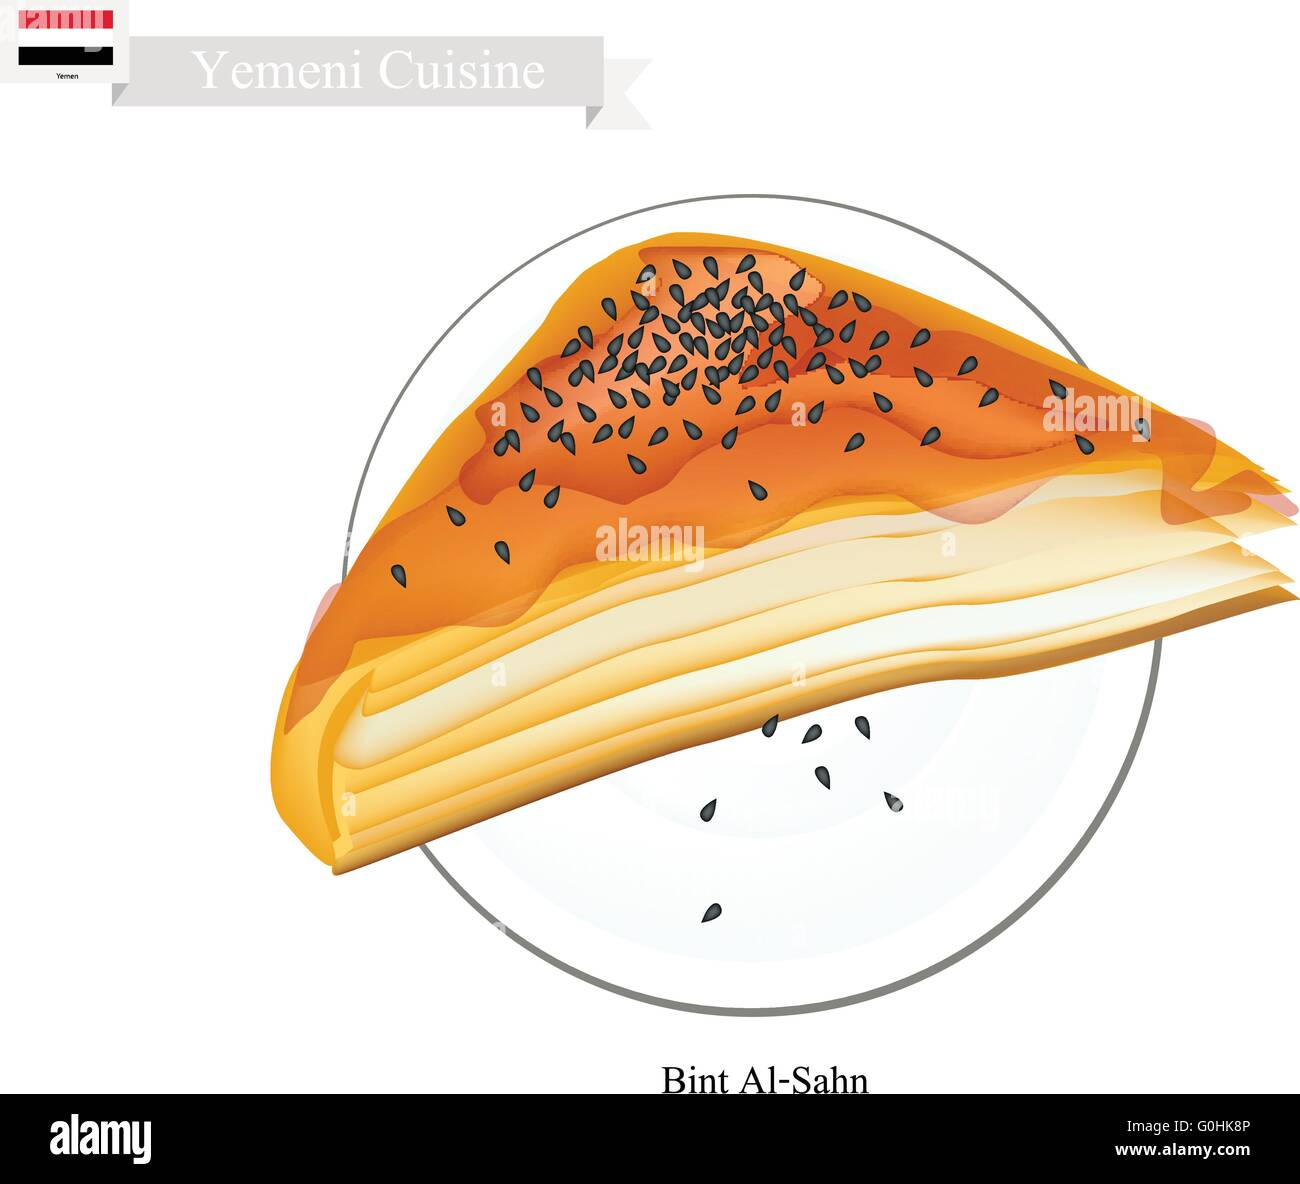 Yemeni Cuisine, Bint Al Sahn or Traditional Phyllo Dough Topping with Sesame and Honey. One of The Most Popular - Stock Vector